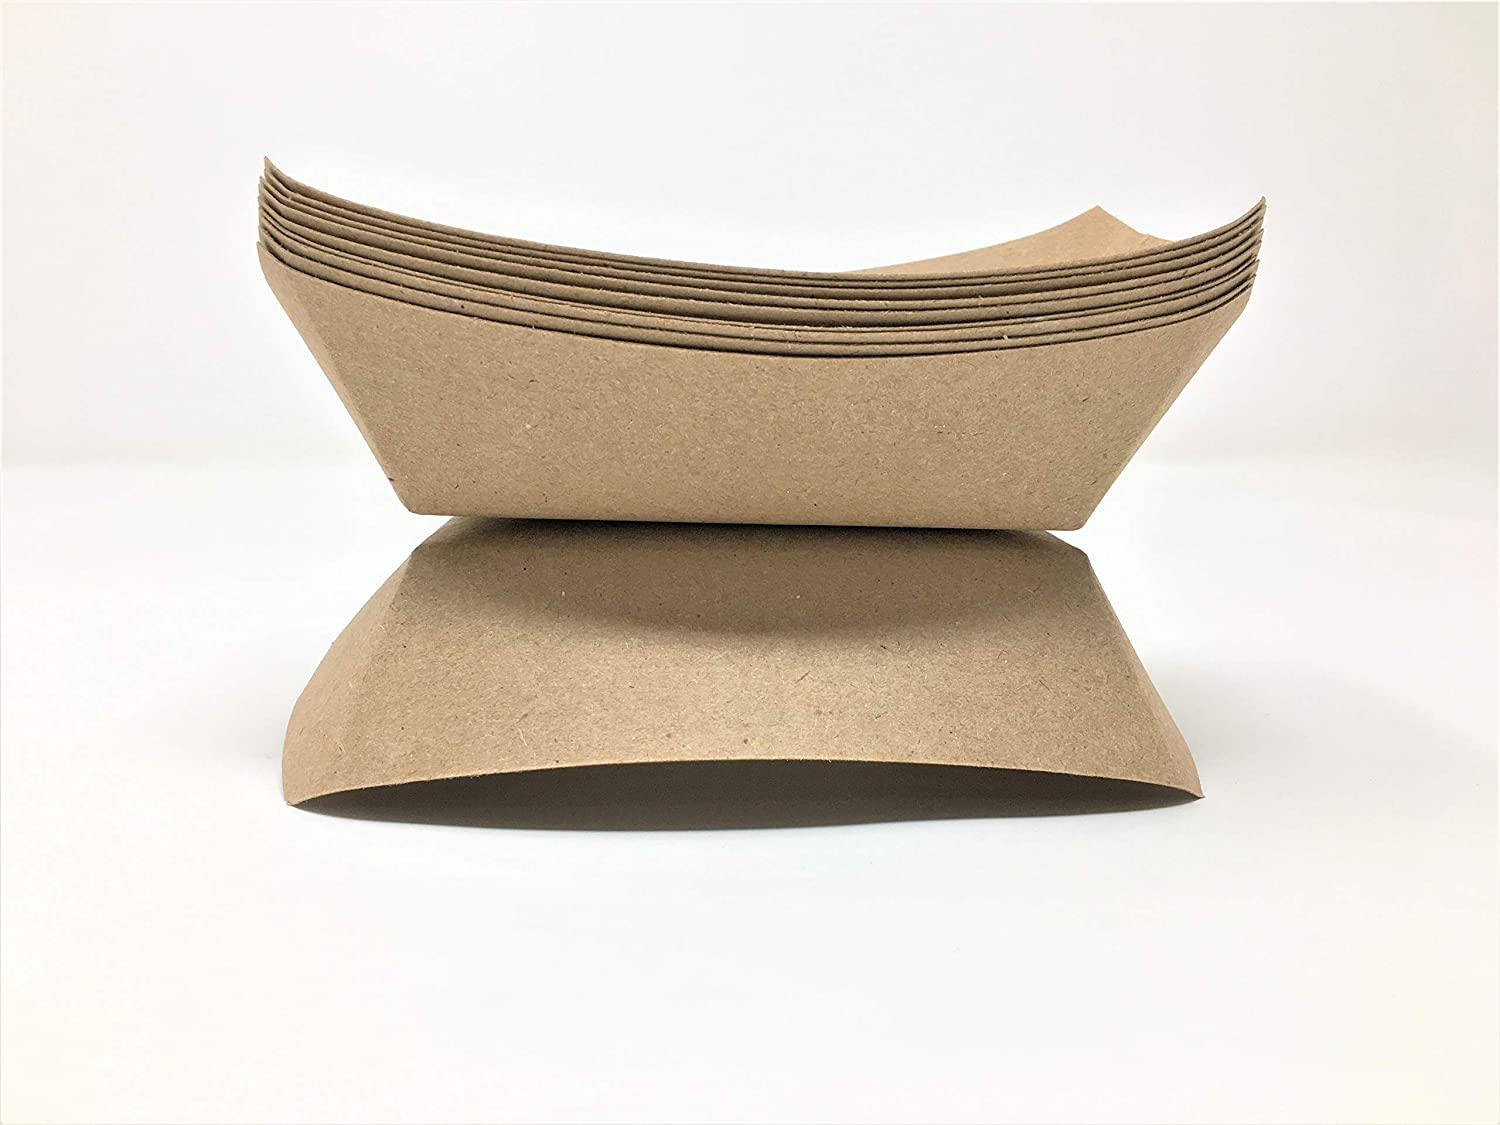 Mr. Miracle Kraft Paper 1/2 Pound Food Tray. Pack of 250. Disposable, Recyclable and Fully Biodegradable. Made in USA